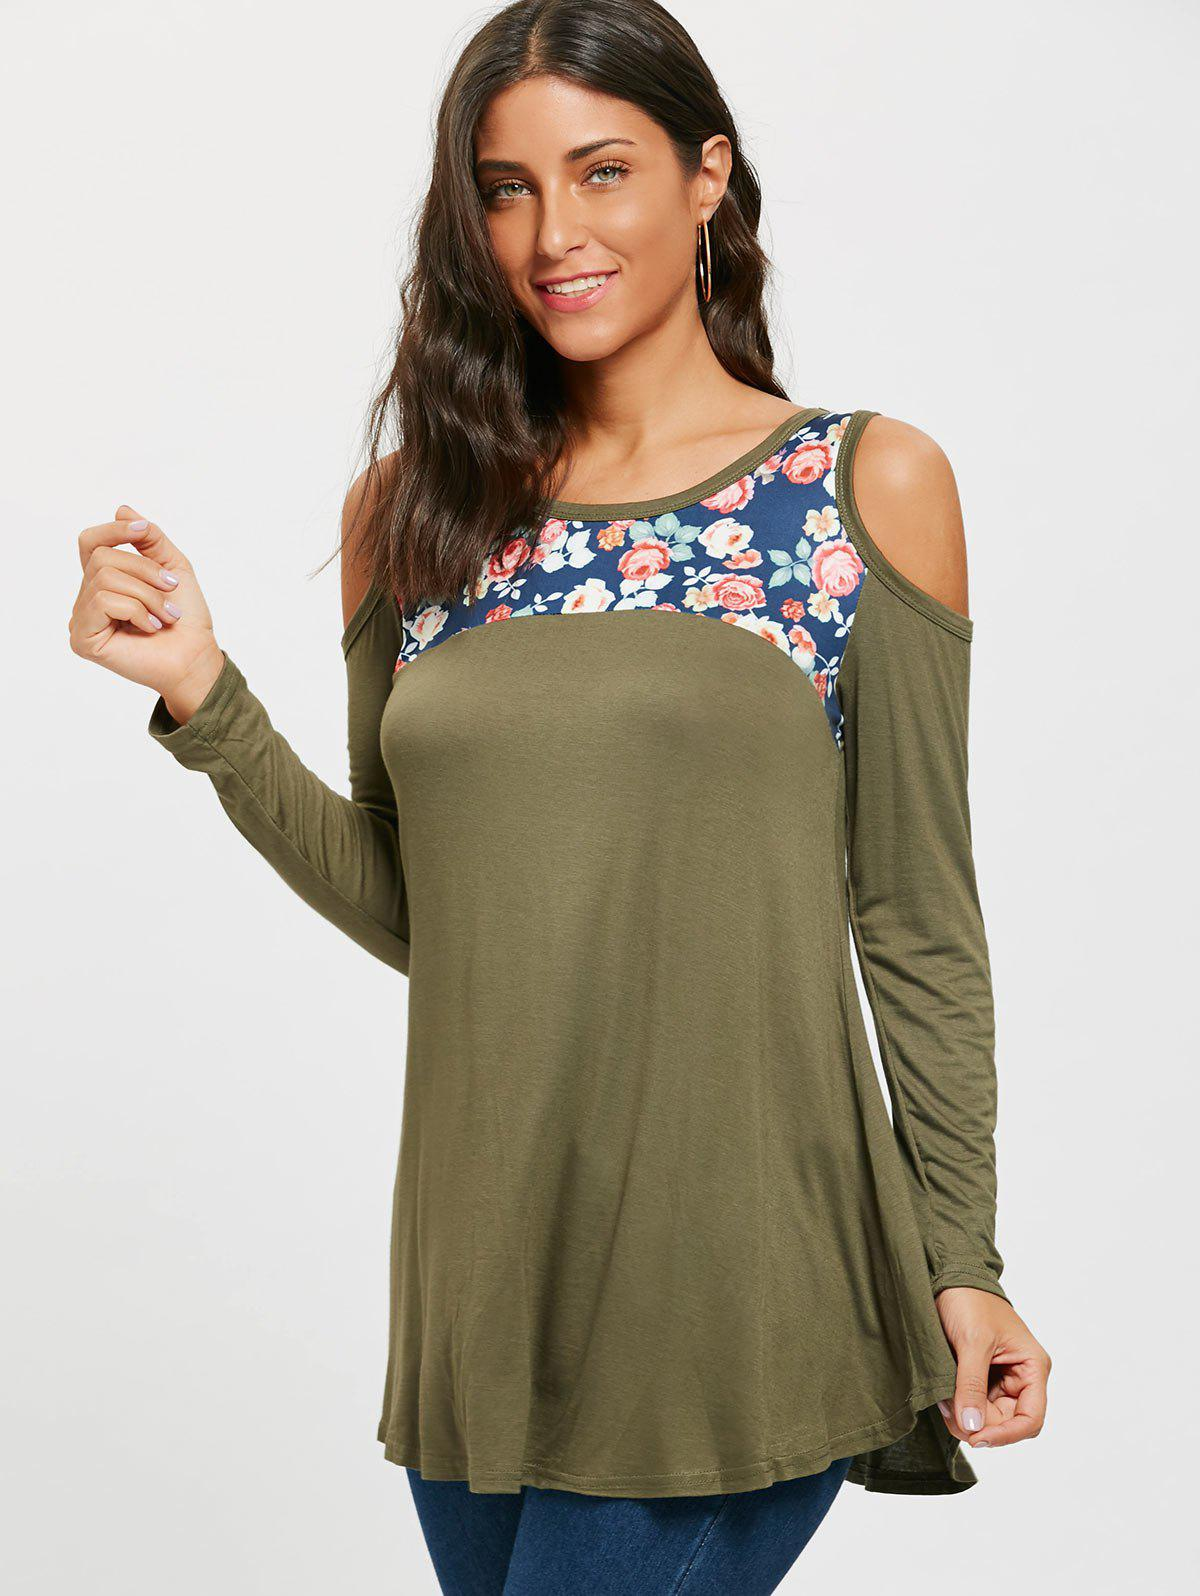 Floral Printed Panel Long Sleeve Cold Shoulder T-shirt - ARMY GREEN L